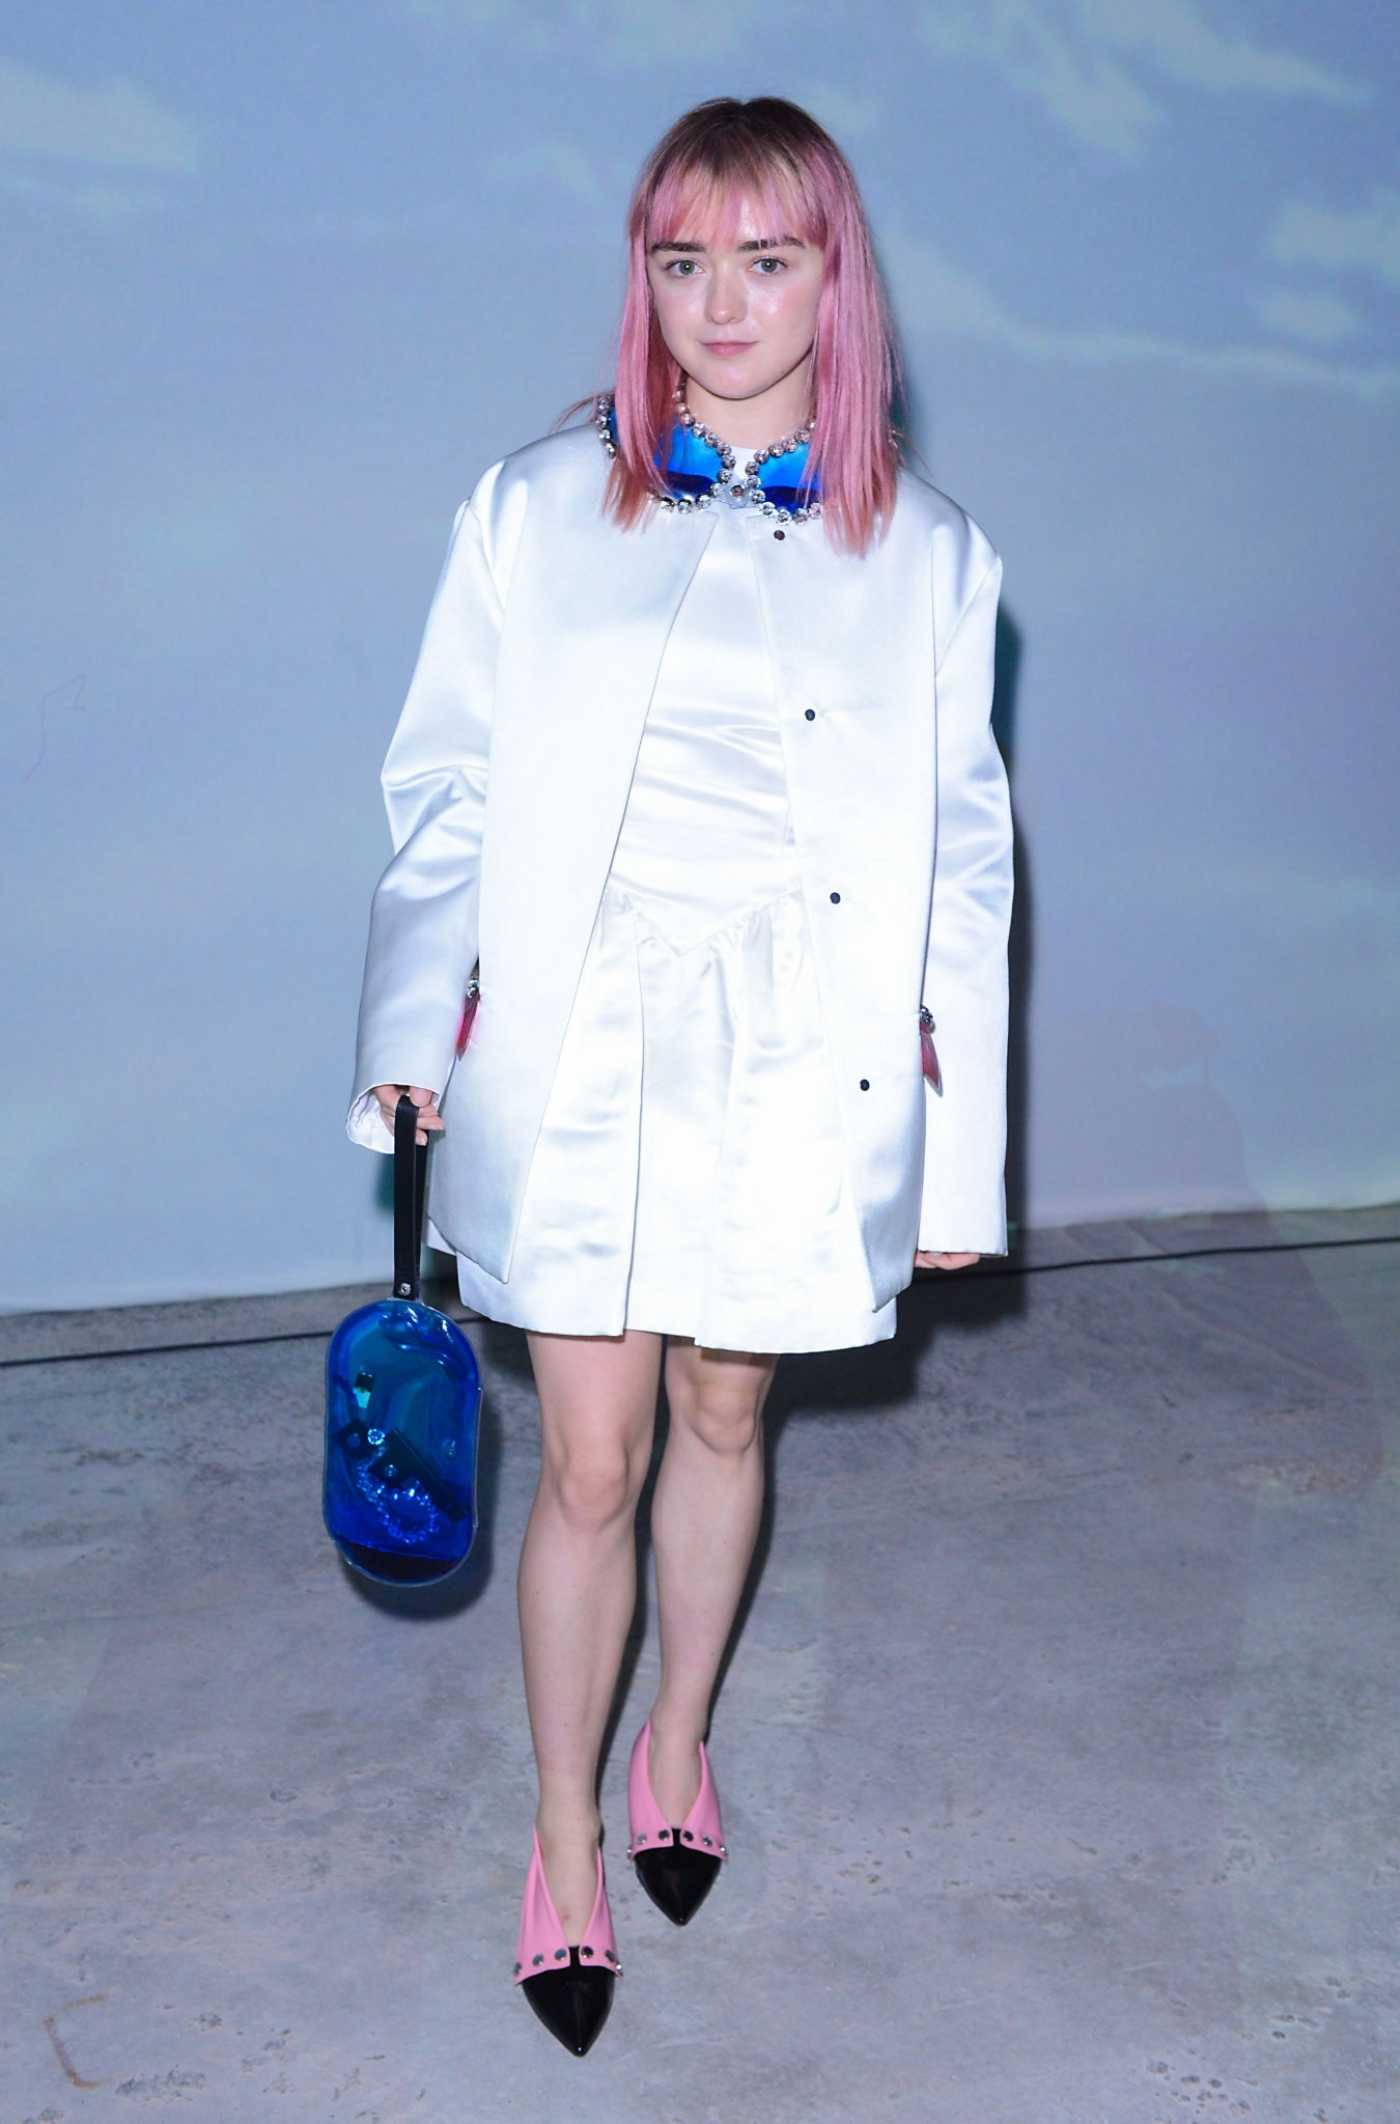 Maisie Williams Attends the Christopher Kane Fashion Show During 2019 London Fashion Week in London 09/16/2019